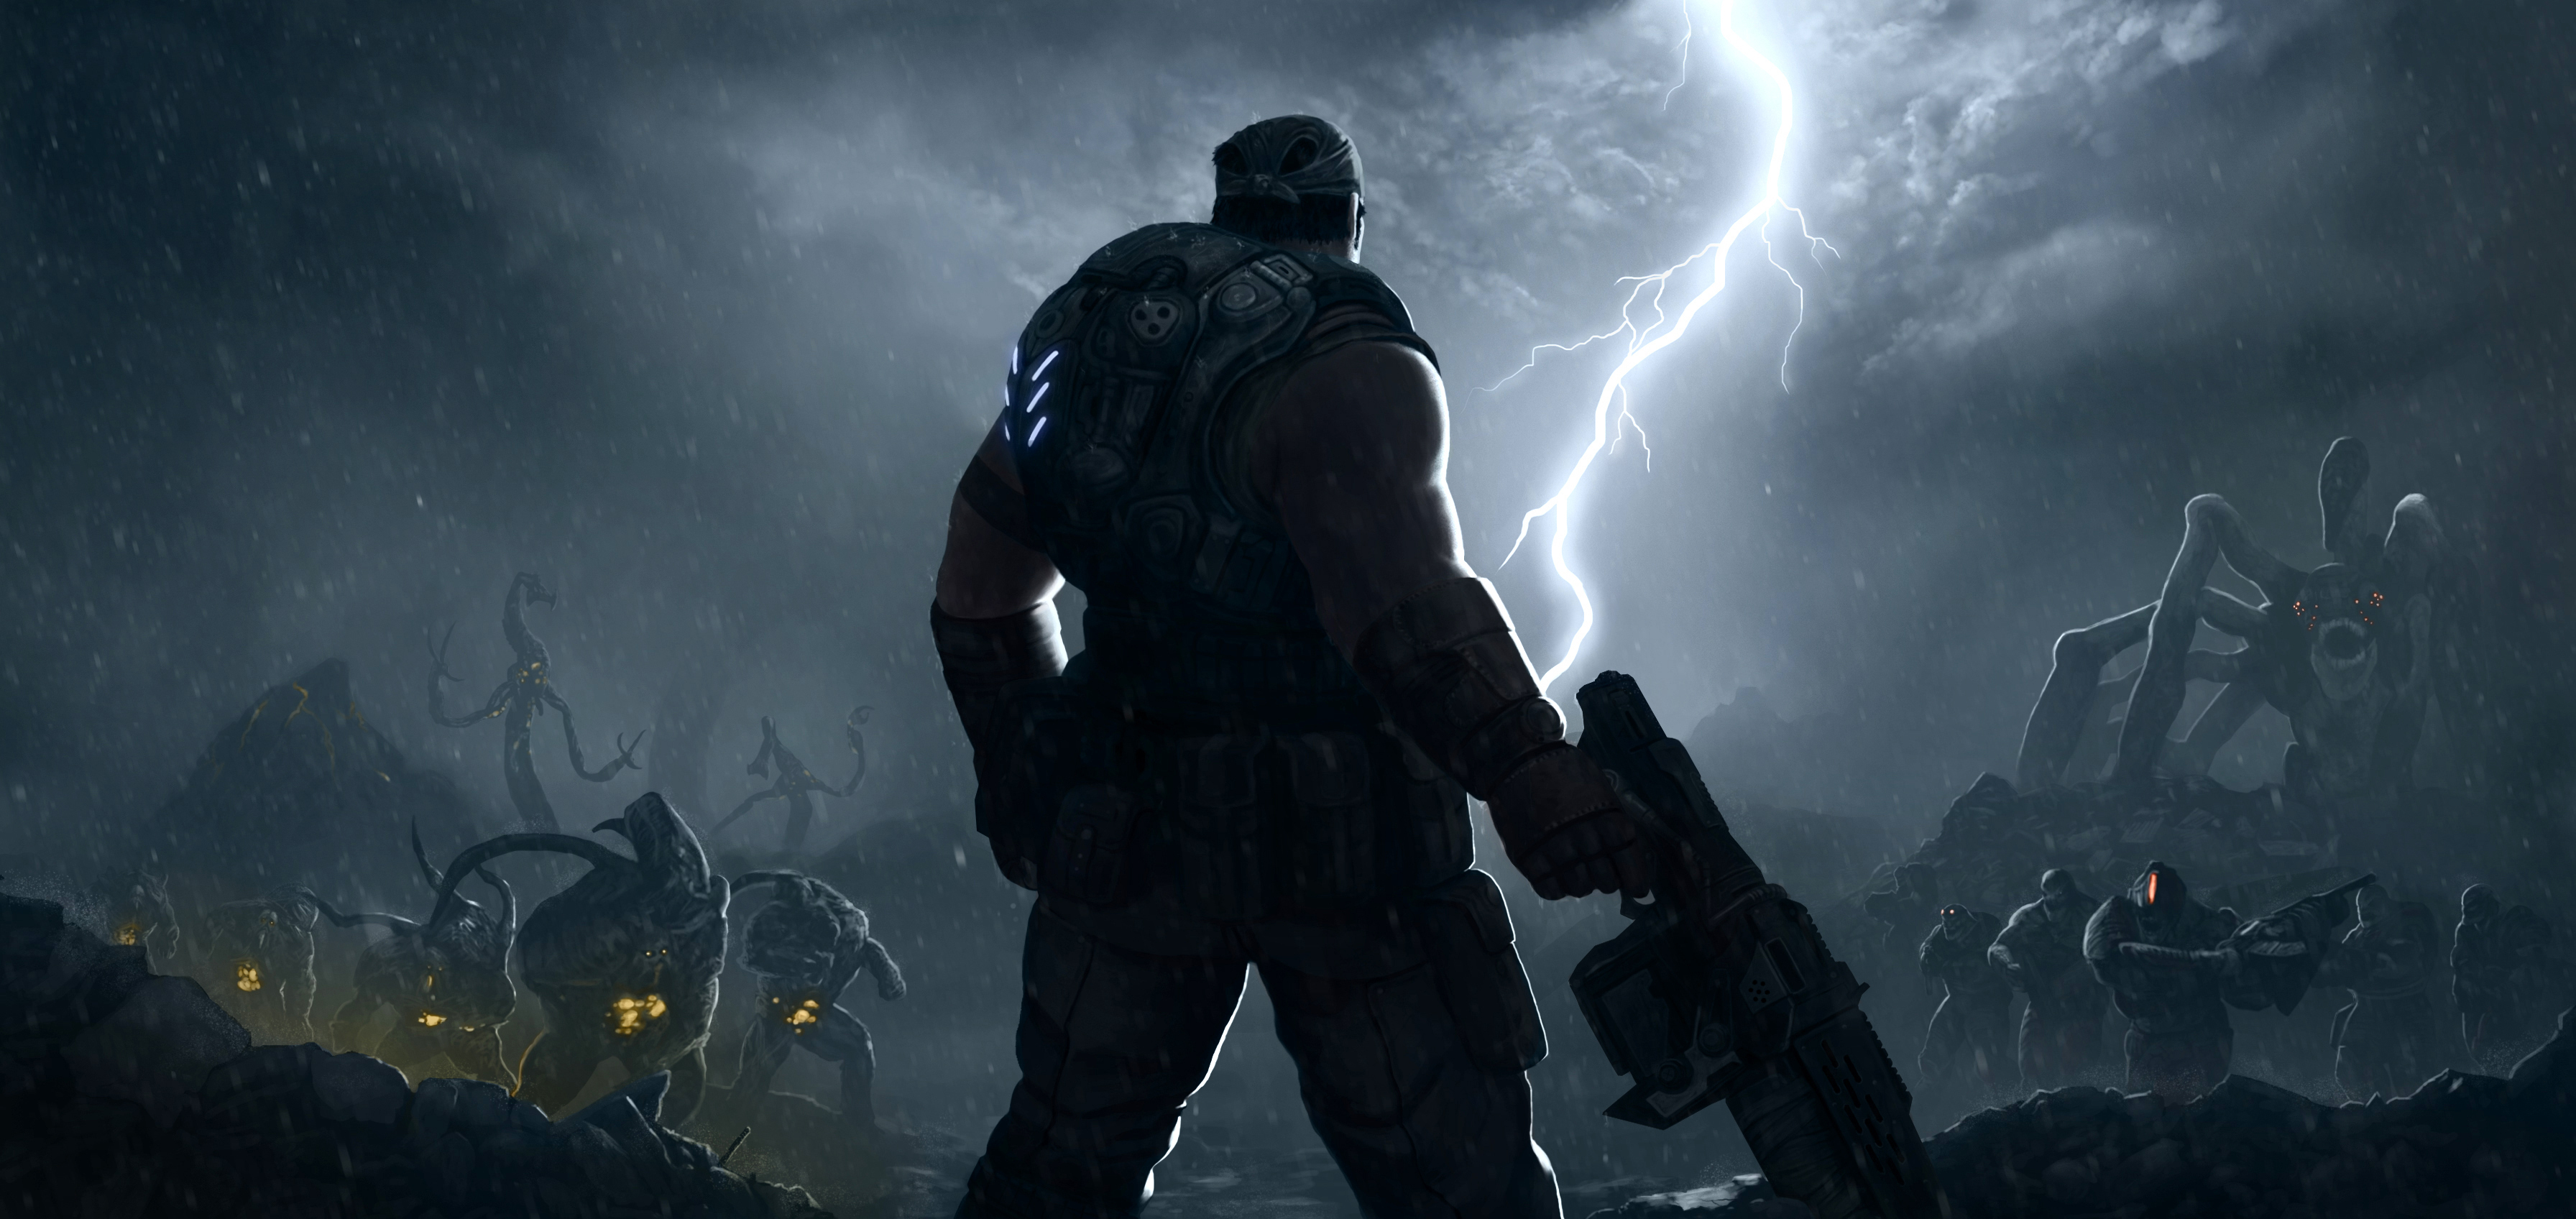 Gears Of War 3 Hd Wallpapers For Android: Phil Spencer Acknowledges GoW: Marcus Fenix Collection